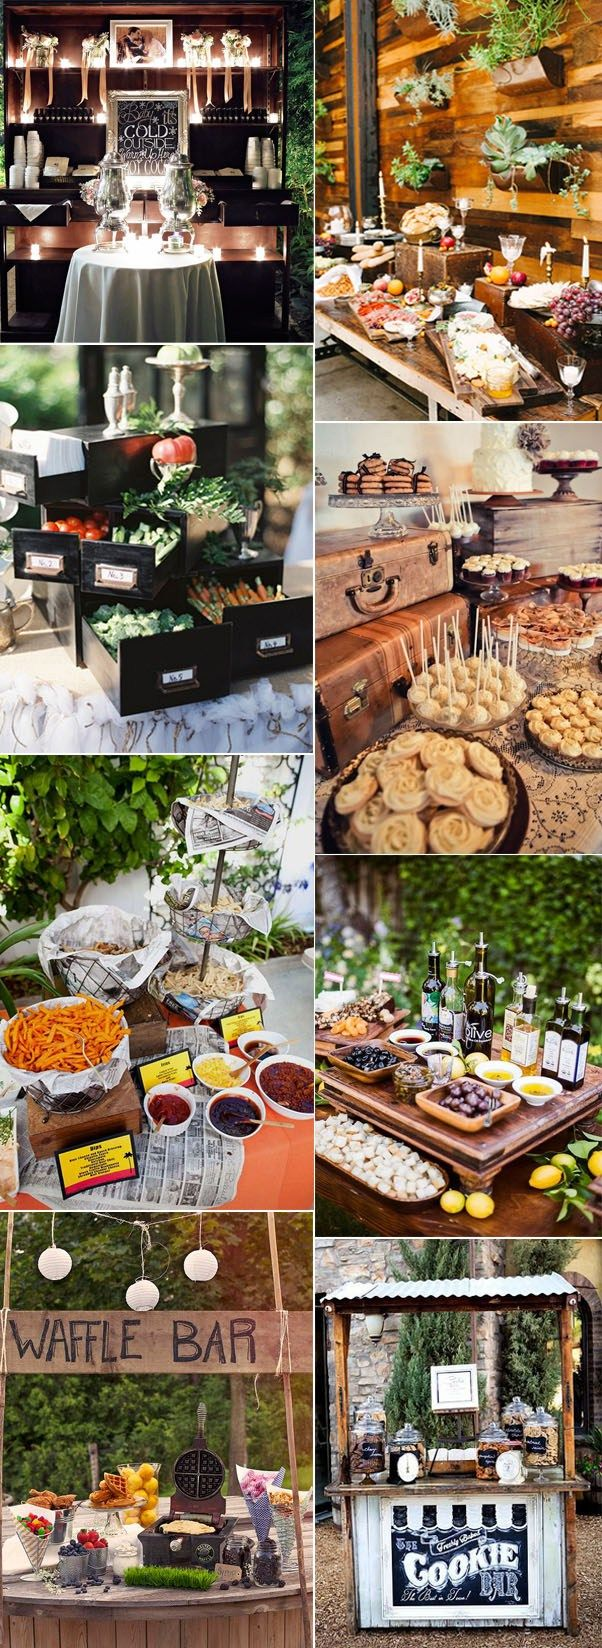 5 Admirable Wedding Food and Drink Bar Ideas: #3. Elegant And Vintage Wedding Food Bar Ideas